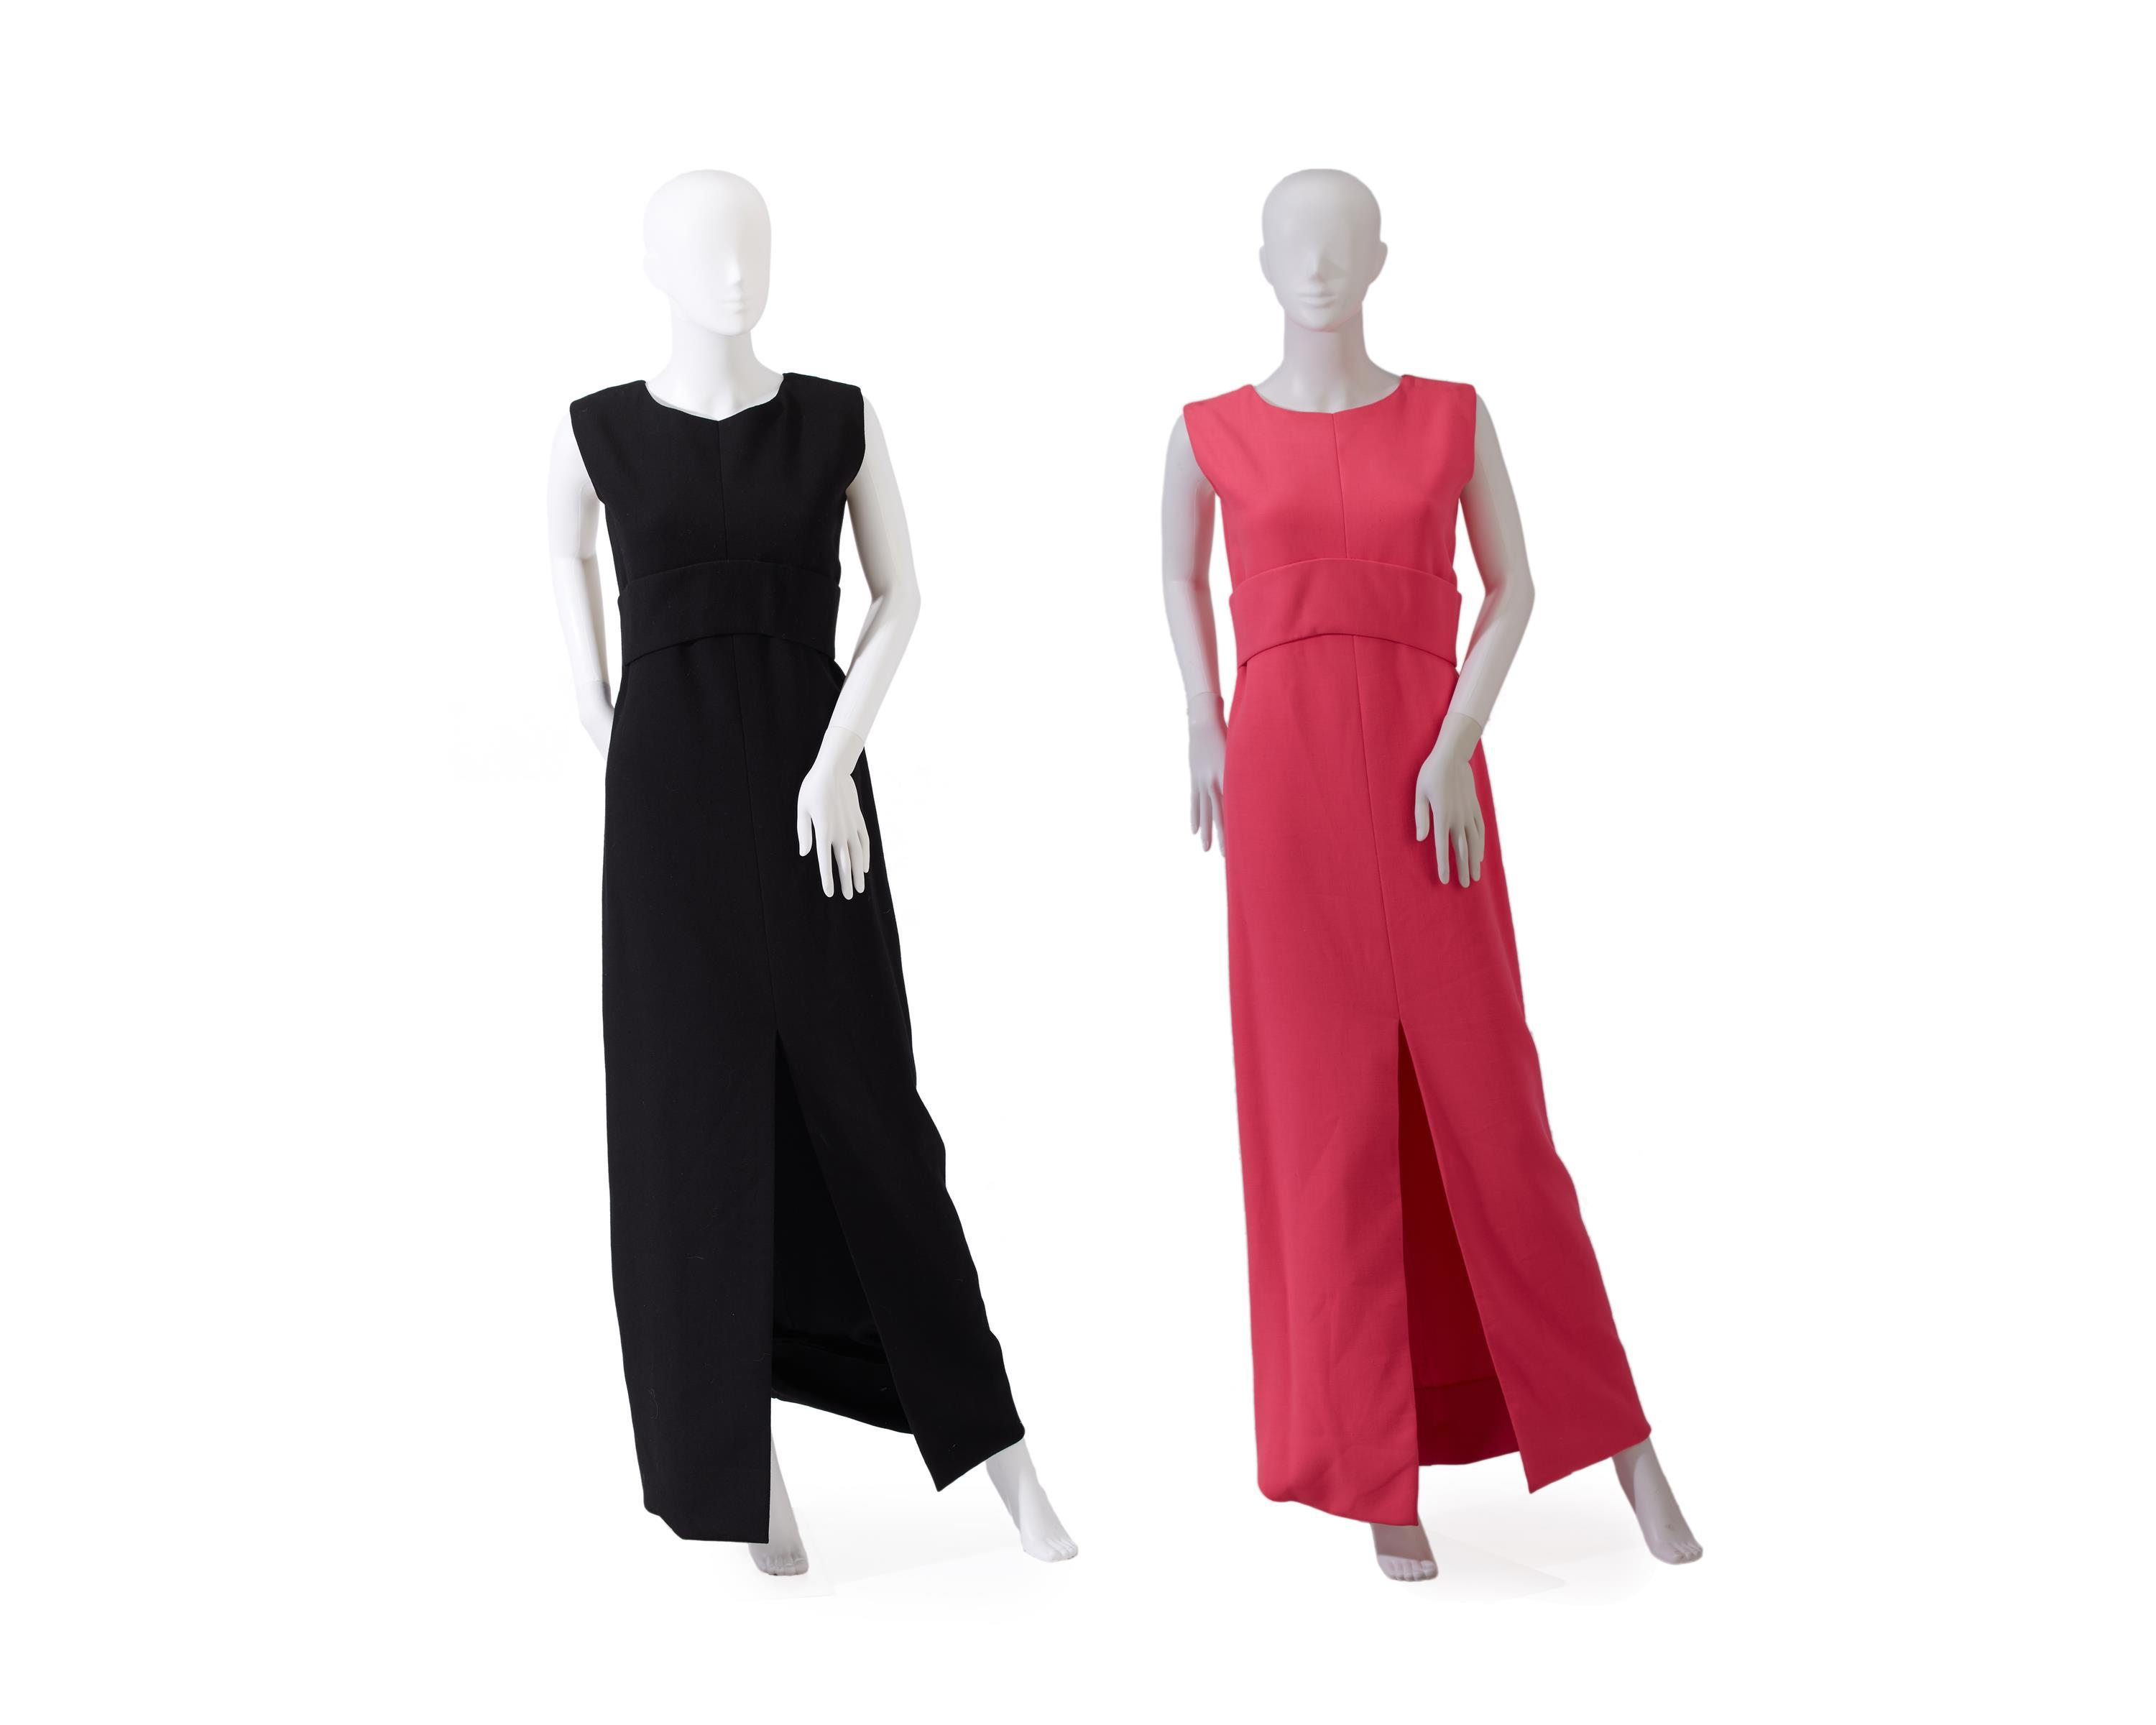 Two Norman Norell evening dresses